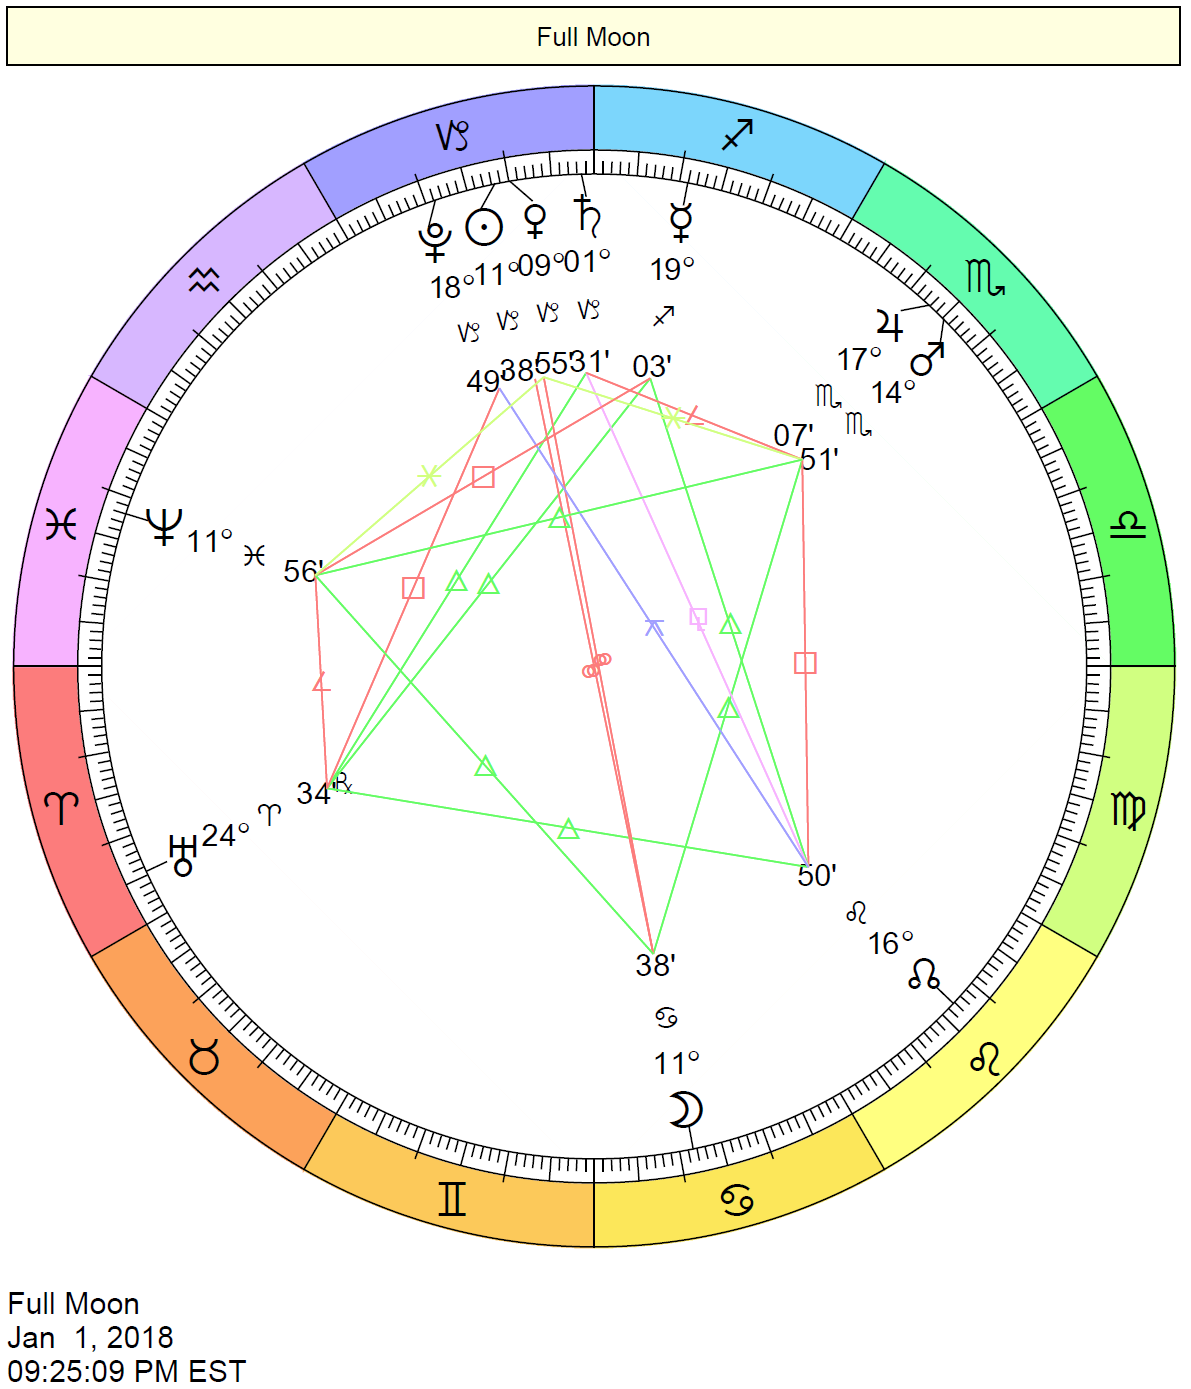 Full Moon in Cancer Chart - January 1, 2018